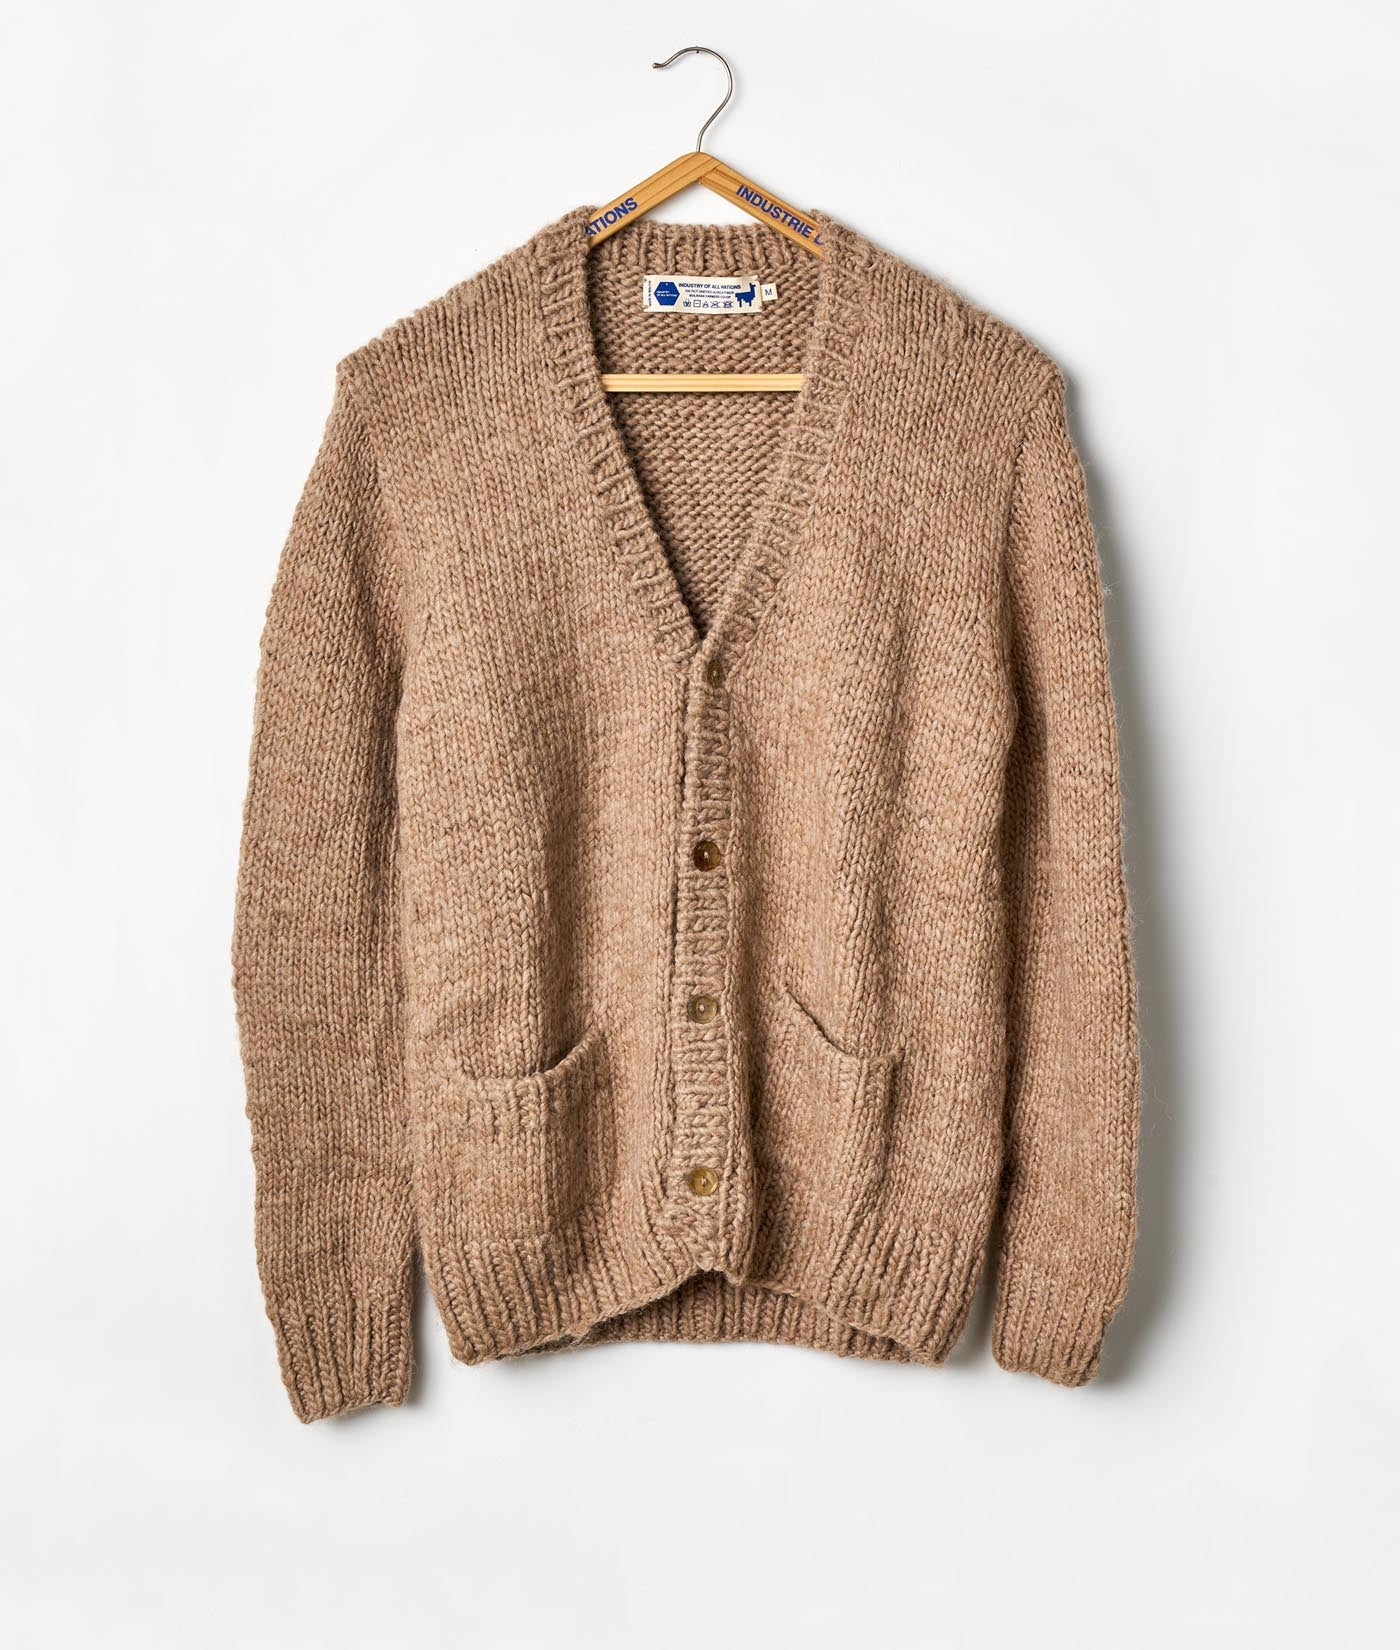 Industry of All Nations Topo Hand Knit Cardigan